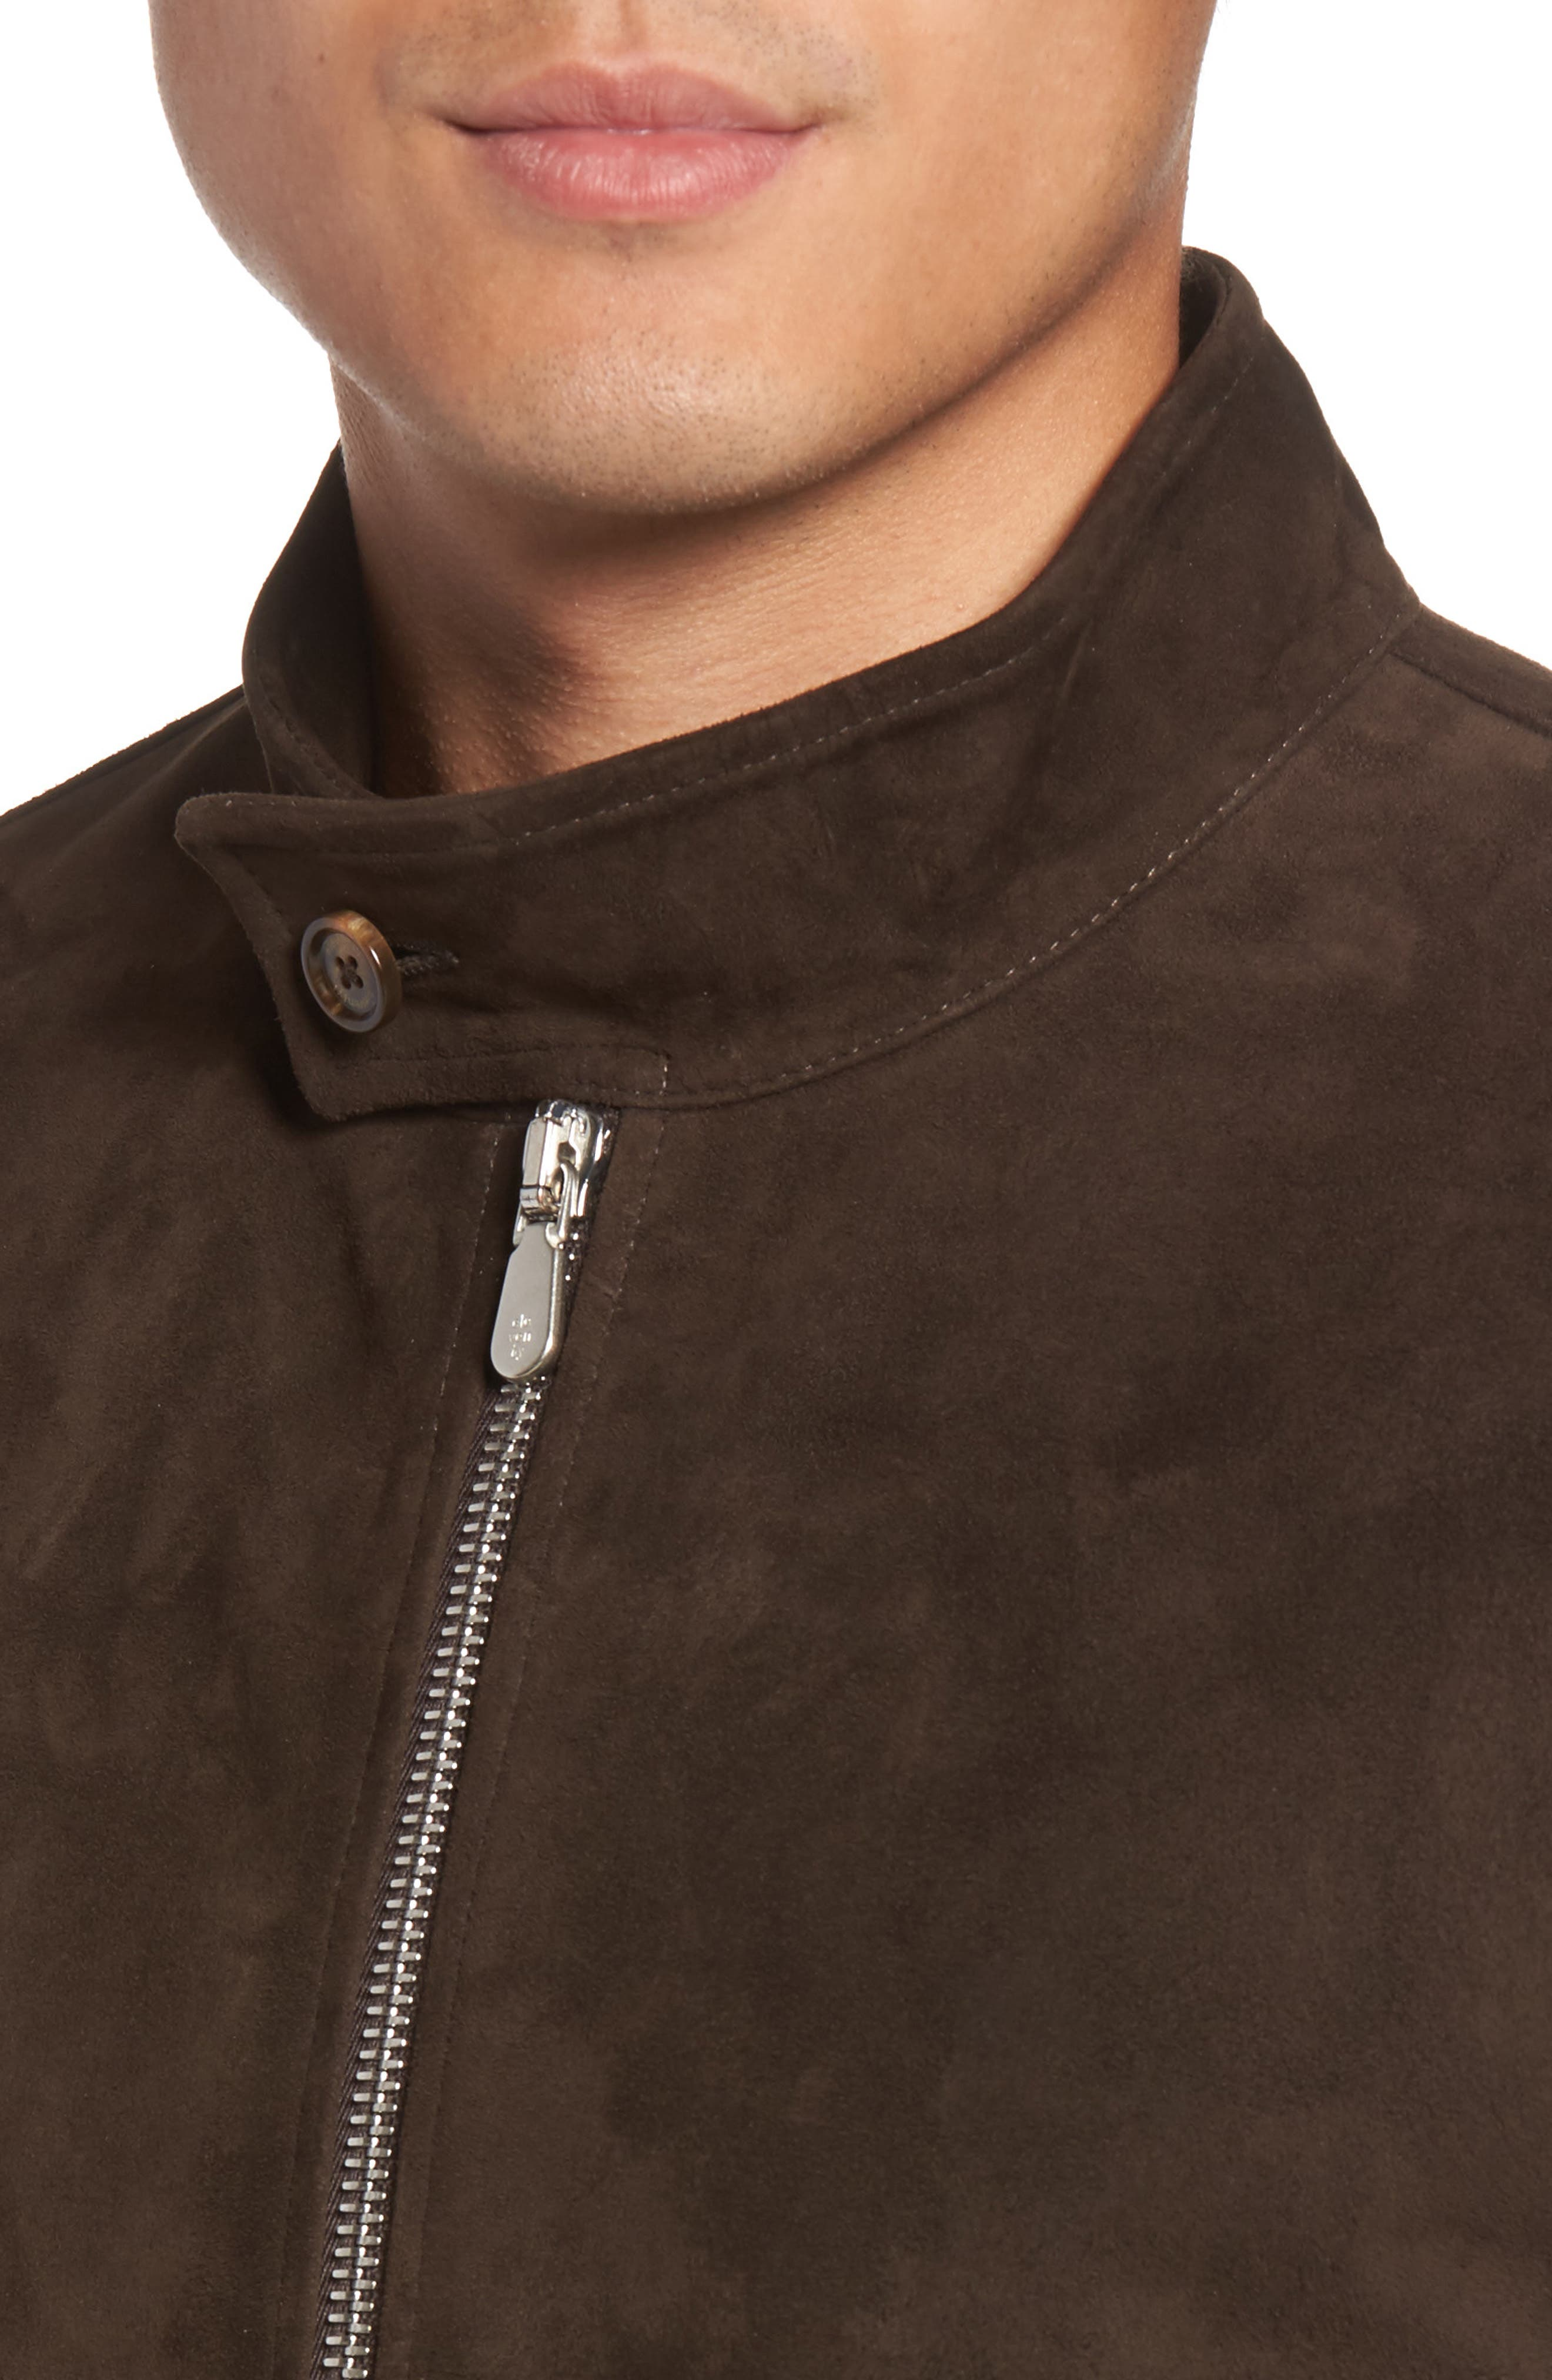 Suede Jacket,                             Alternate thumbnail 5, color,                             Chocolate Brown